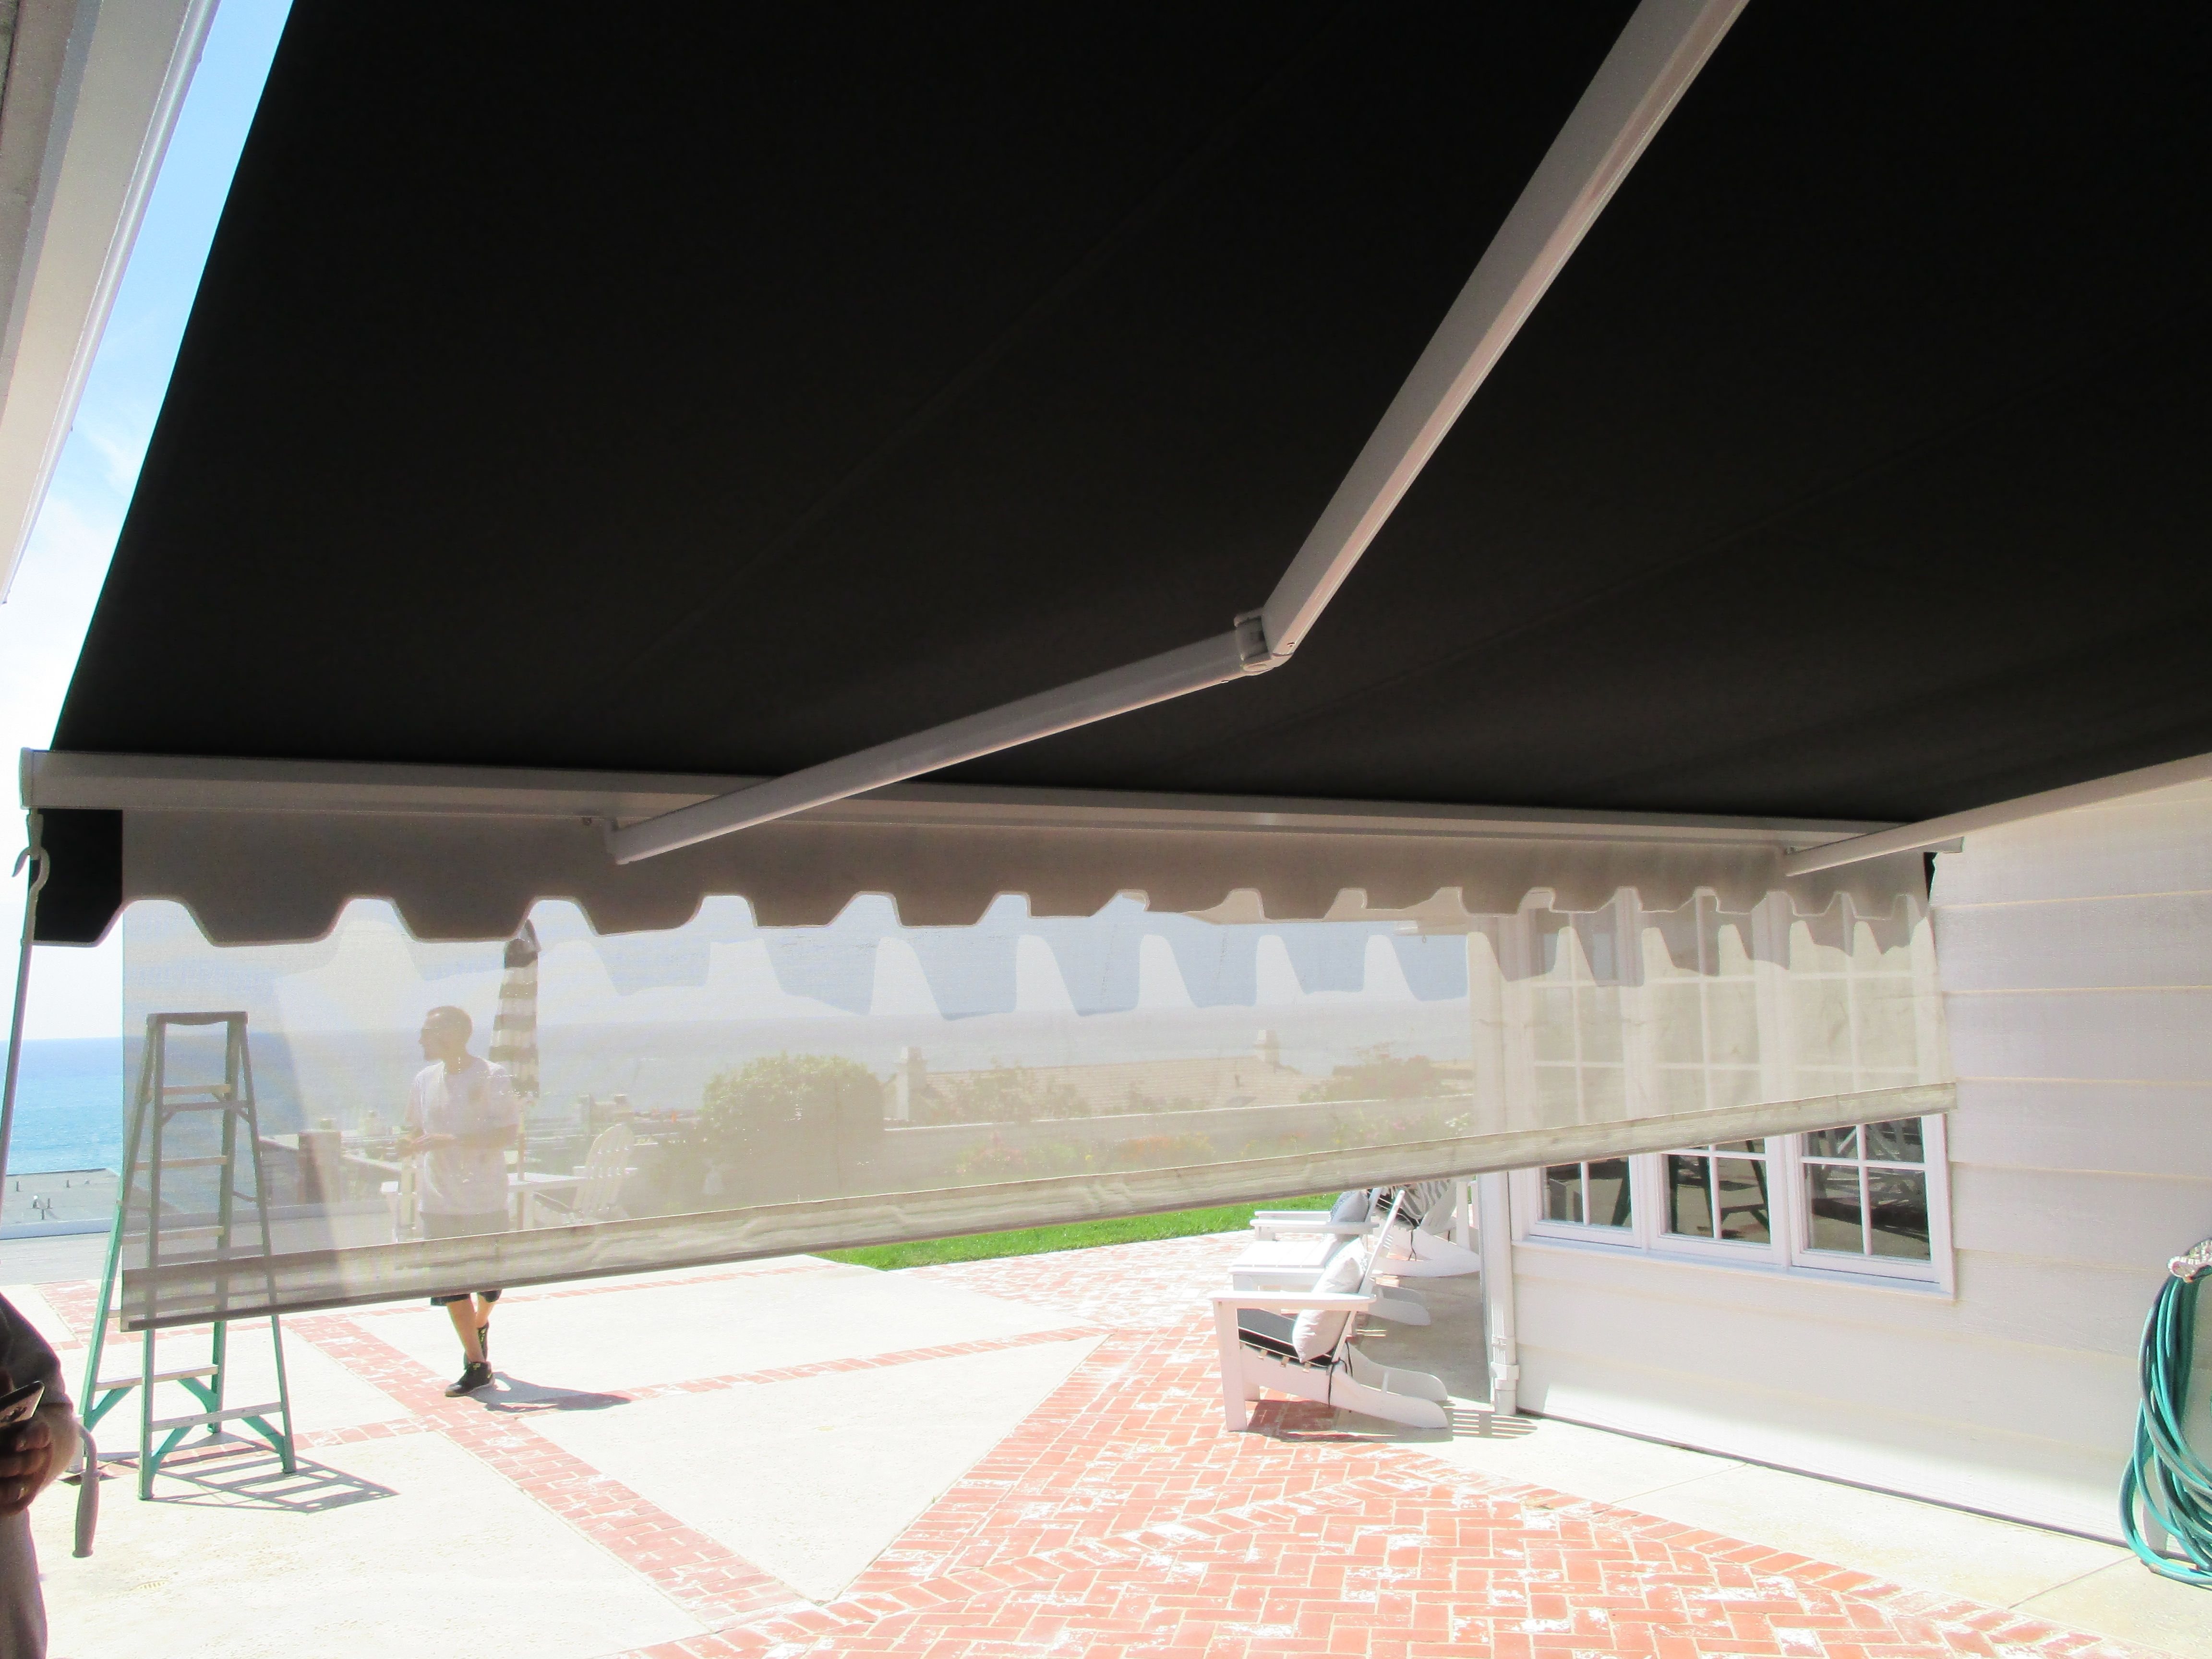 Check Out This Unique Motorized Retractable Awning With Decorative Trim And A Manual Drop S Retractable Awning Wood Trellis Home Improvement Projects